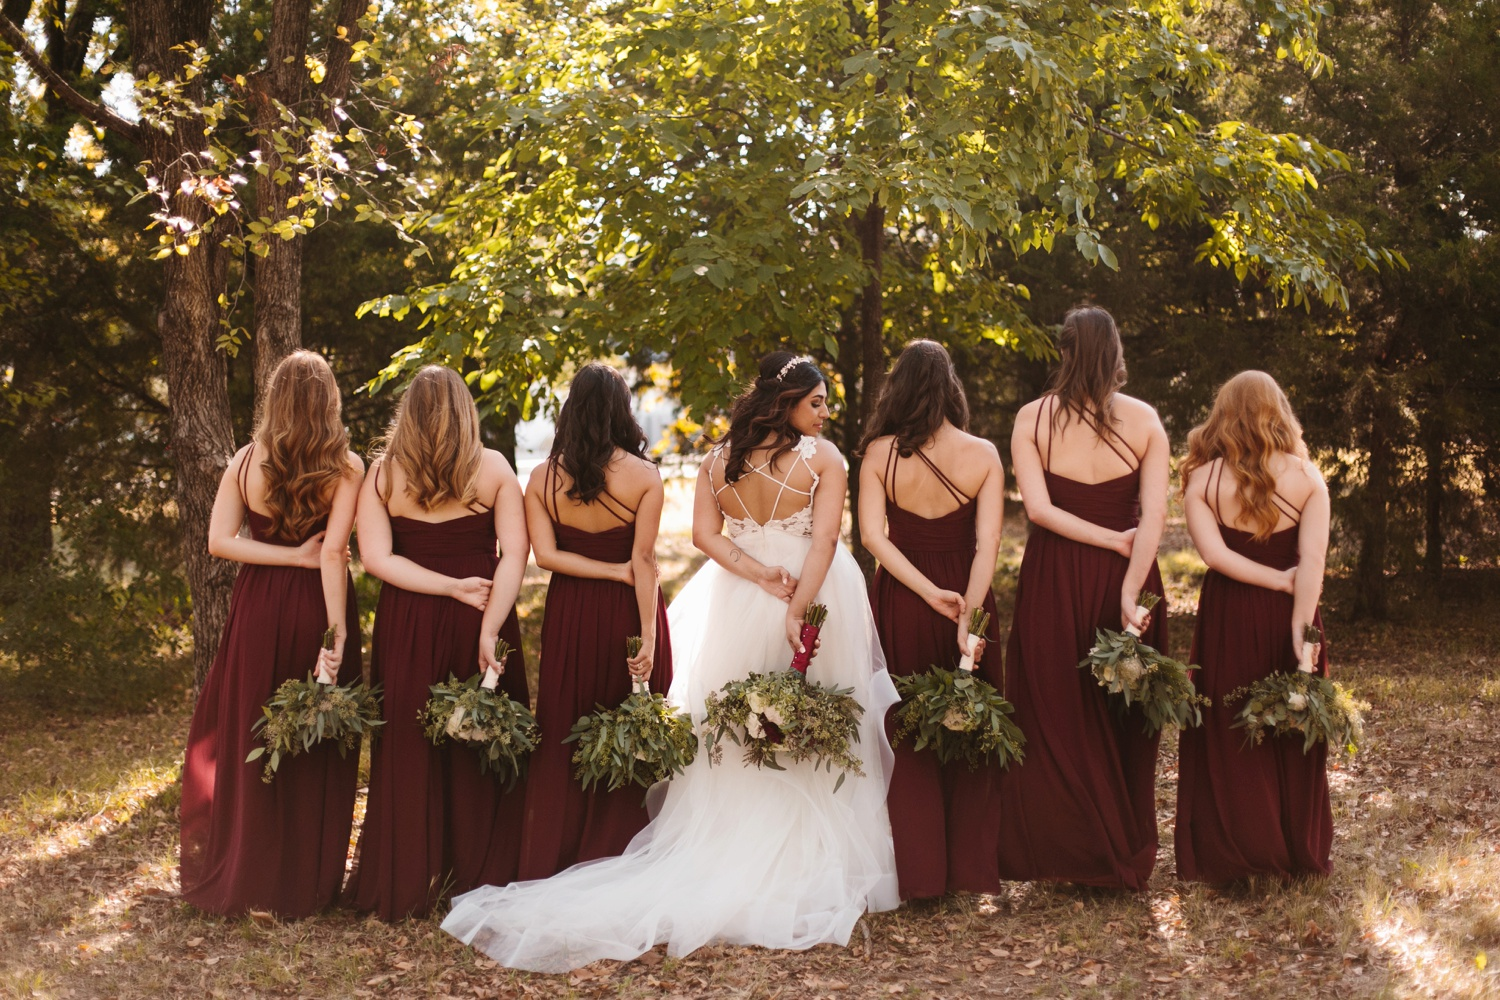 Grant + Lysette | a vibrant, deep burgundy and navy, and mixed metals wedding at Hidden Pines Chapel by North Texas Wedding Photographer Rachel Meagan Photography 043